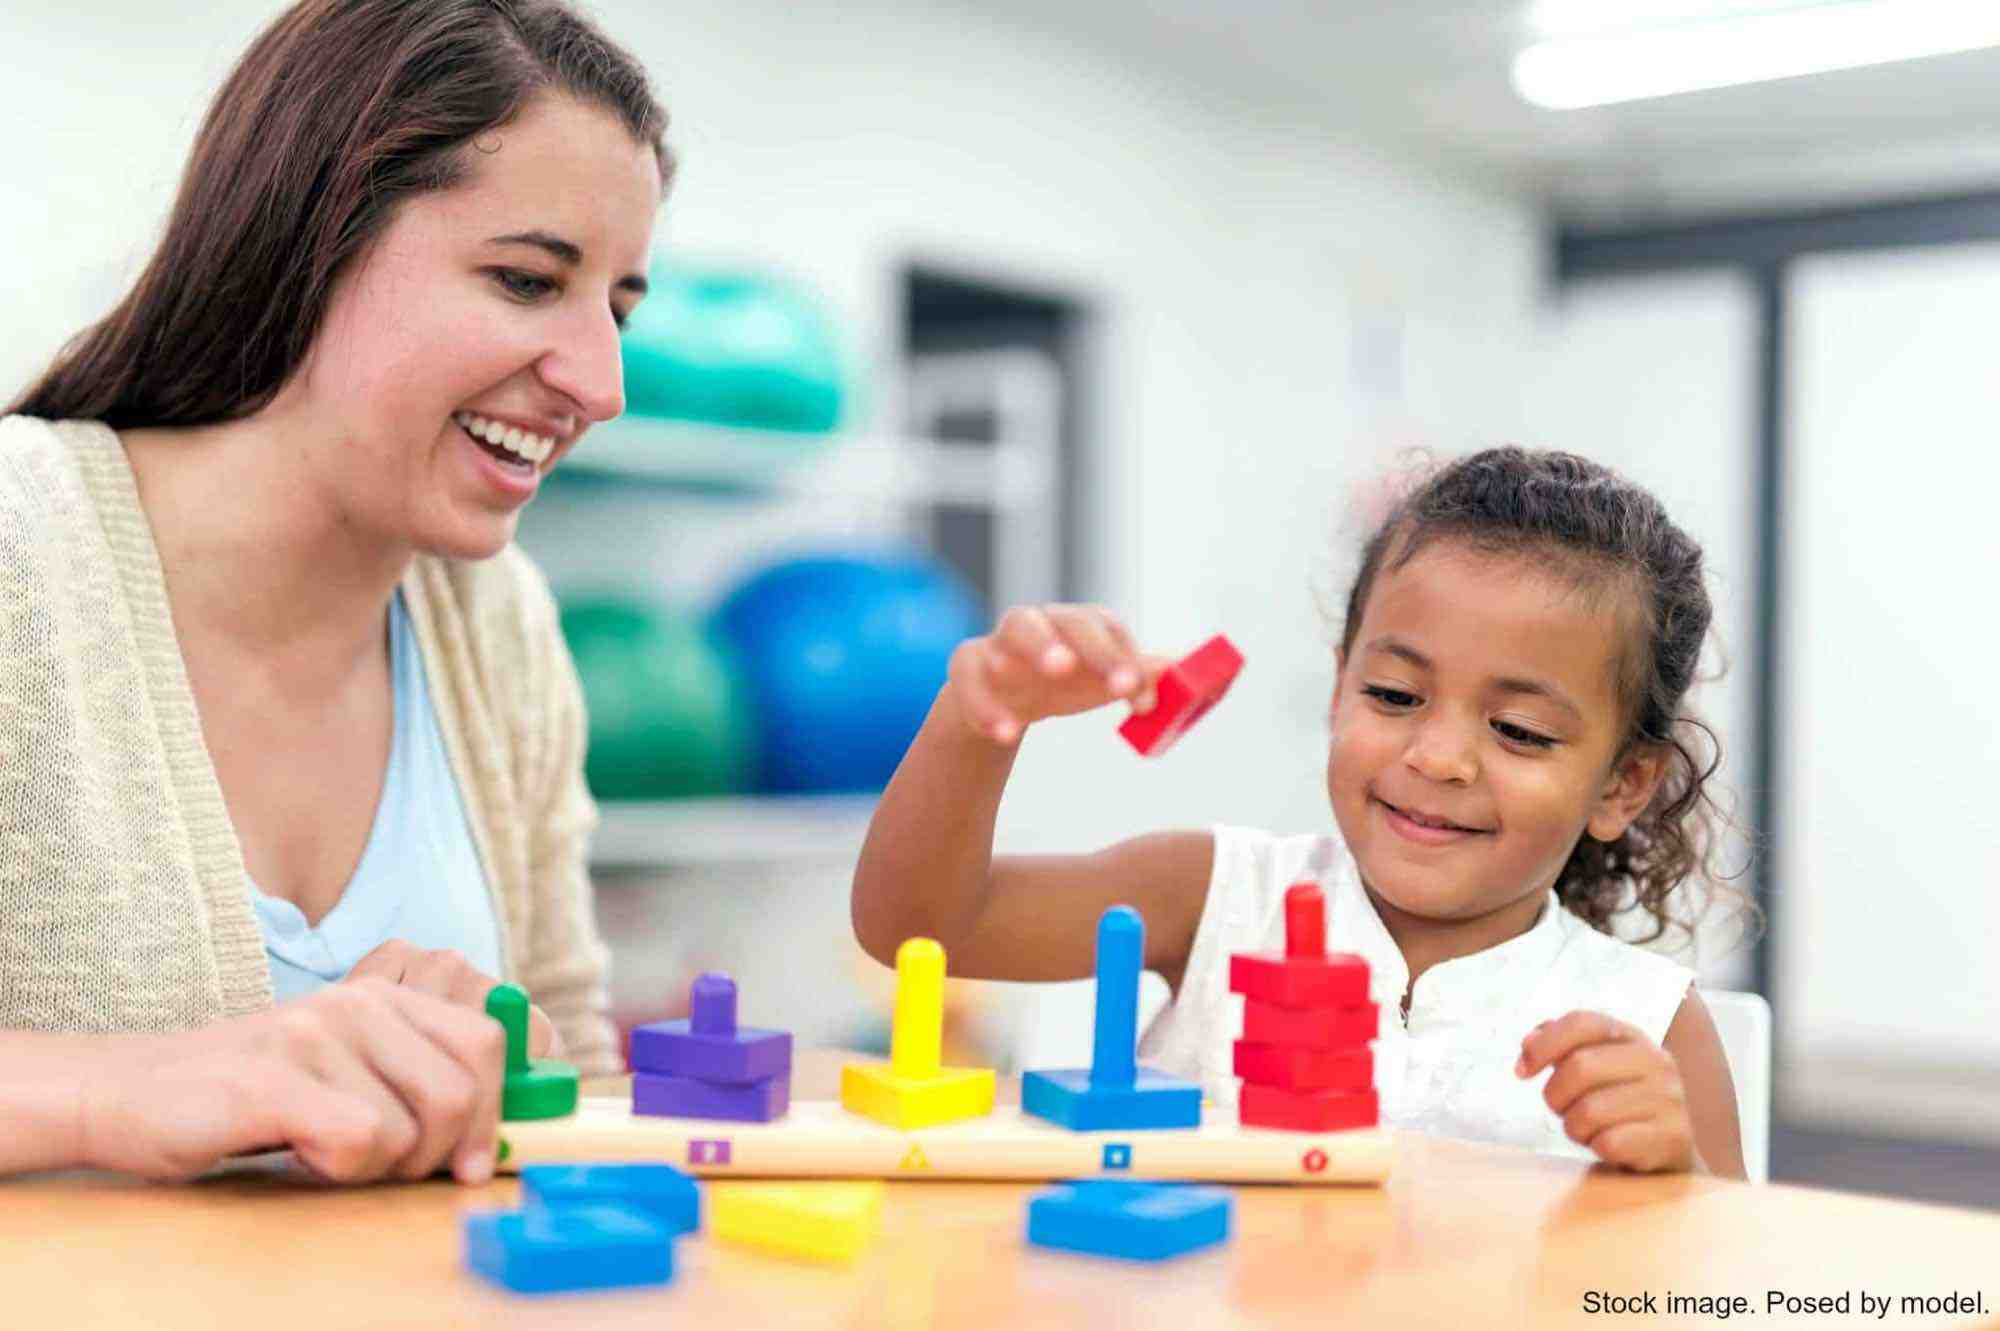 Therapist working with young child on a block puzzle